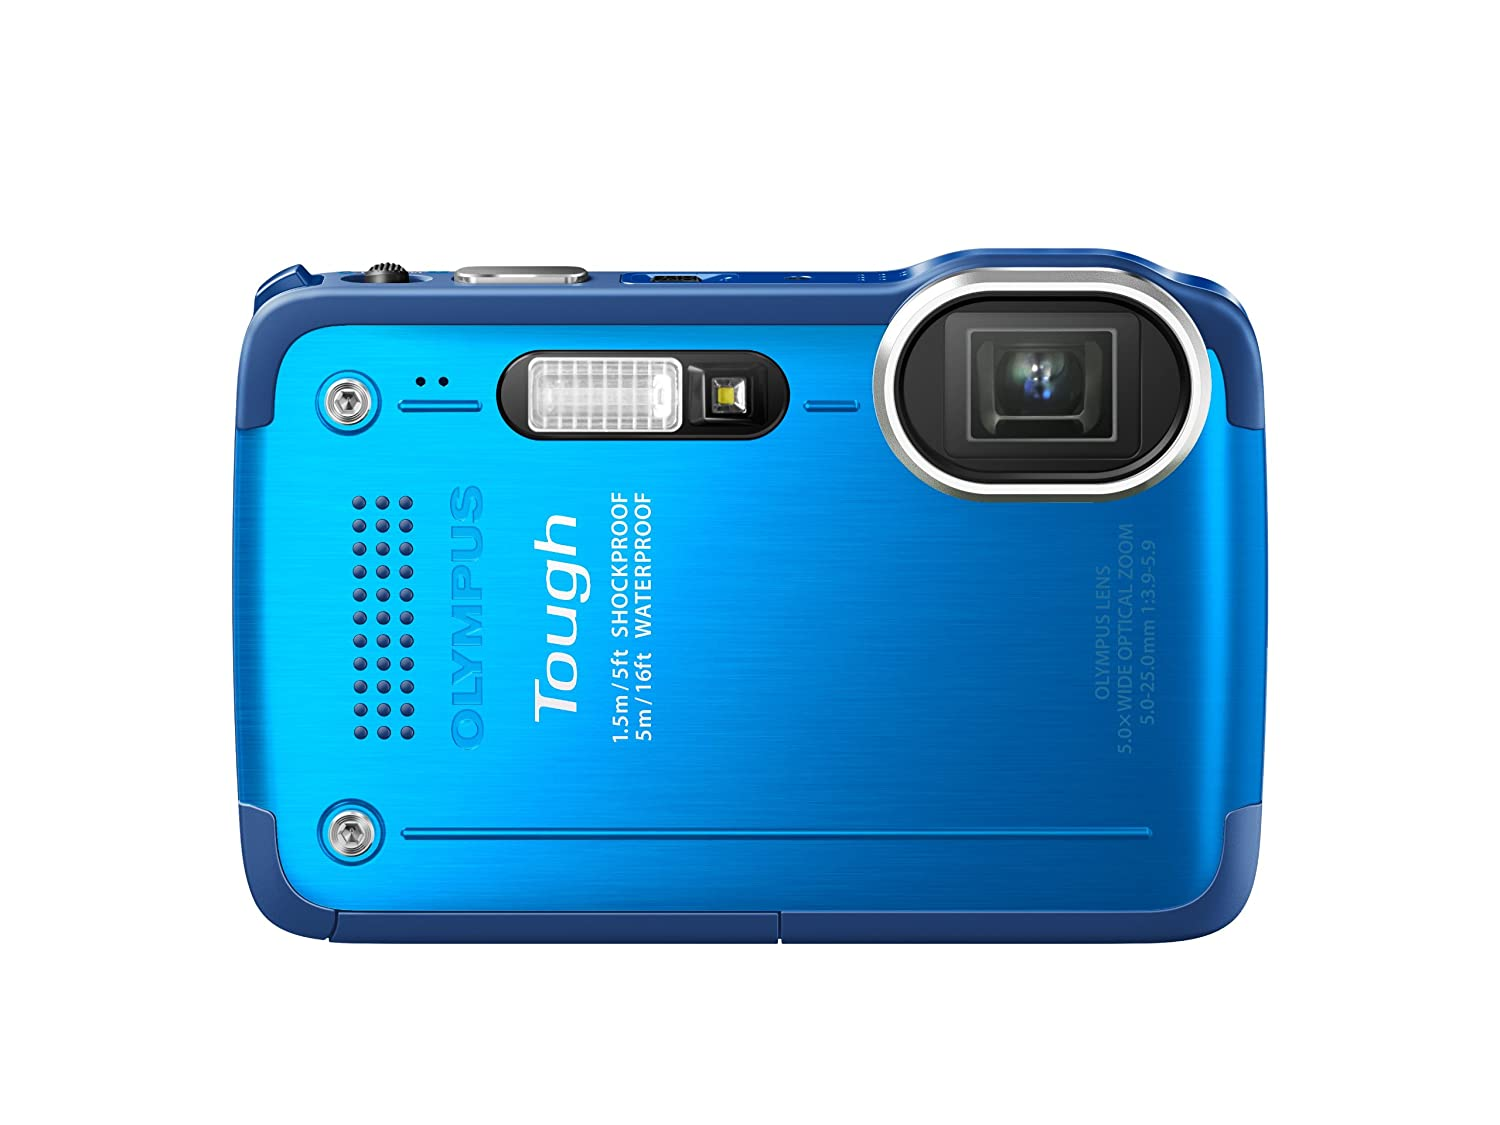 Olympus Stylus TG-630 iHS Digital Camera with 5x Optical Zoom and 3-Inch LCD